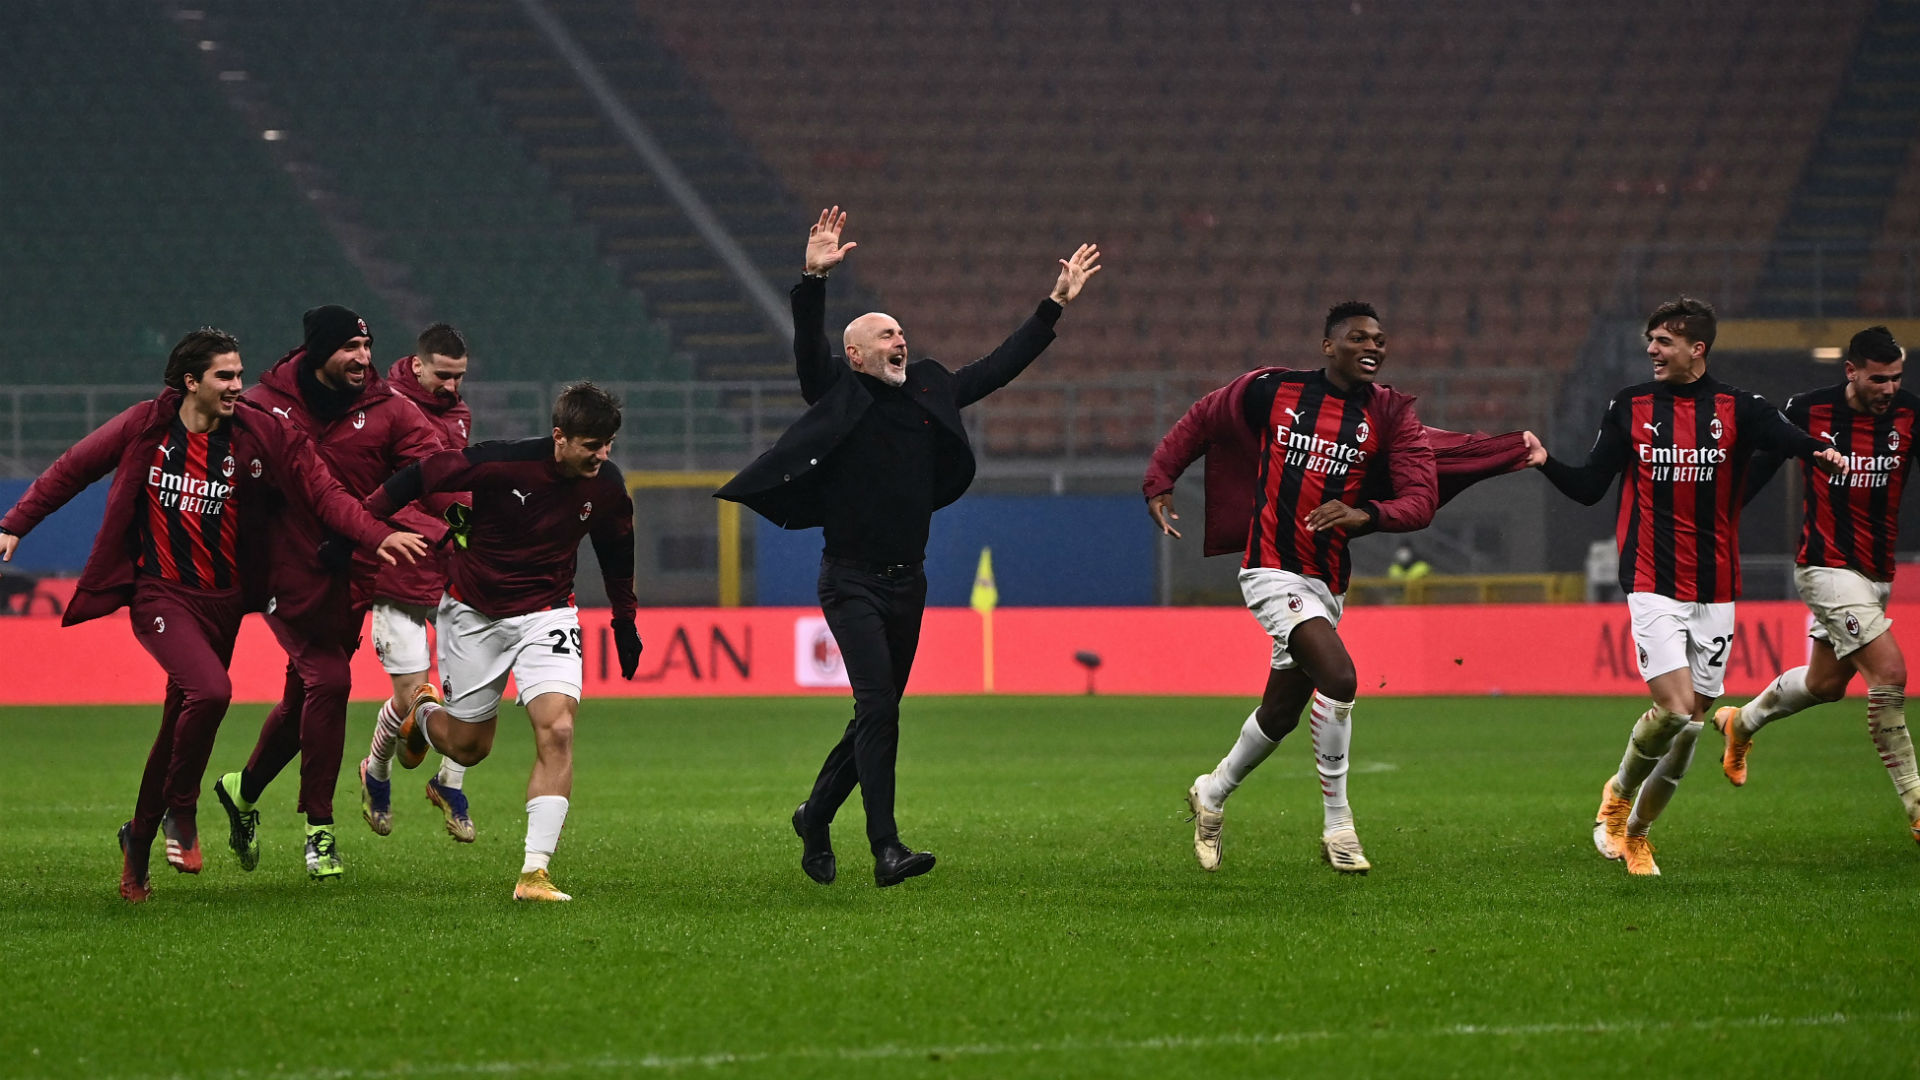 Milan players have a 'fire burning inside' – Pioli hails table-topping Rossoneri